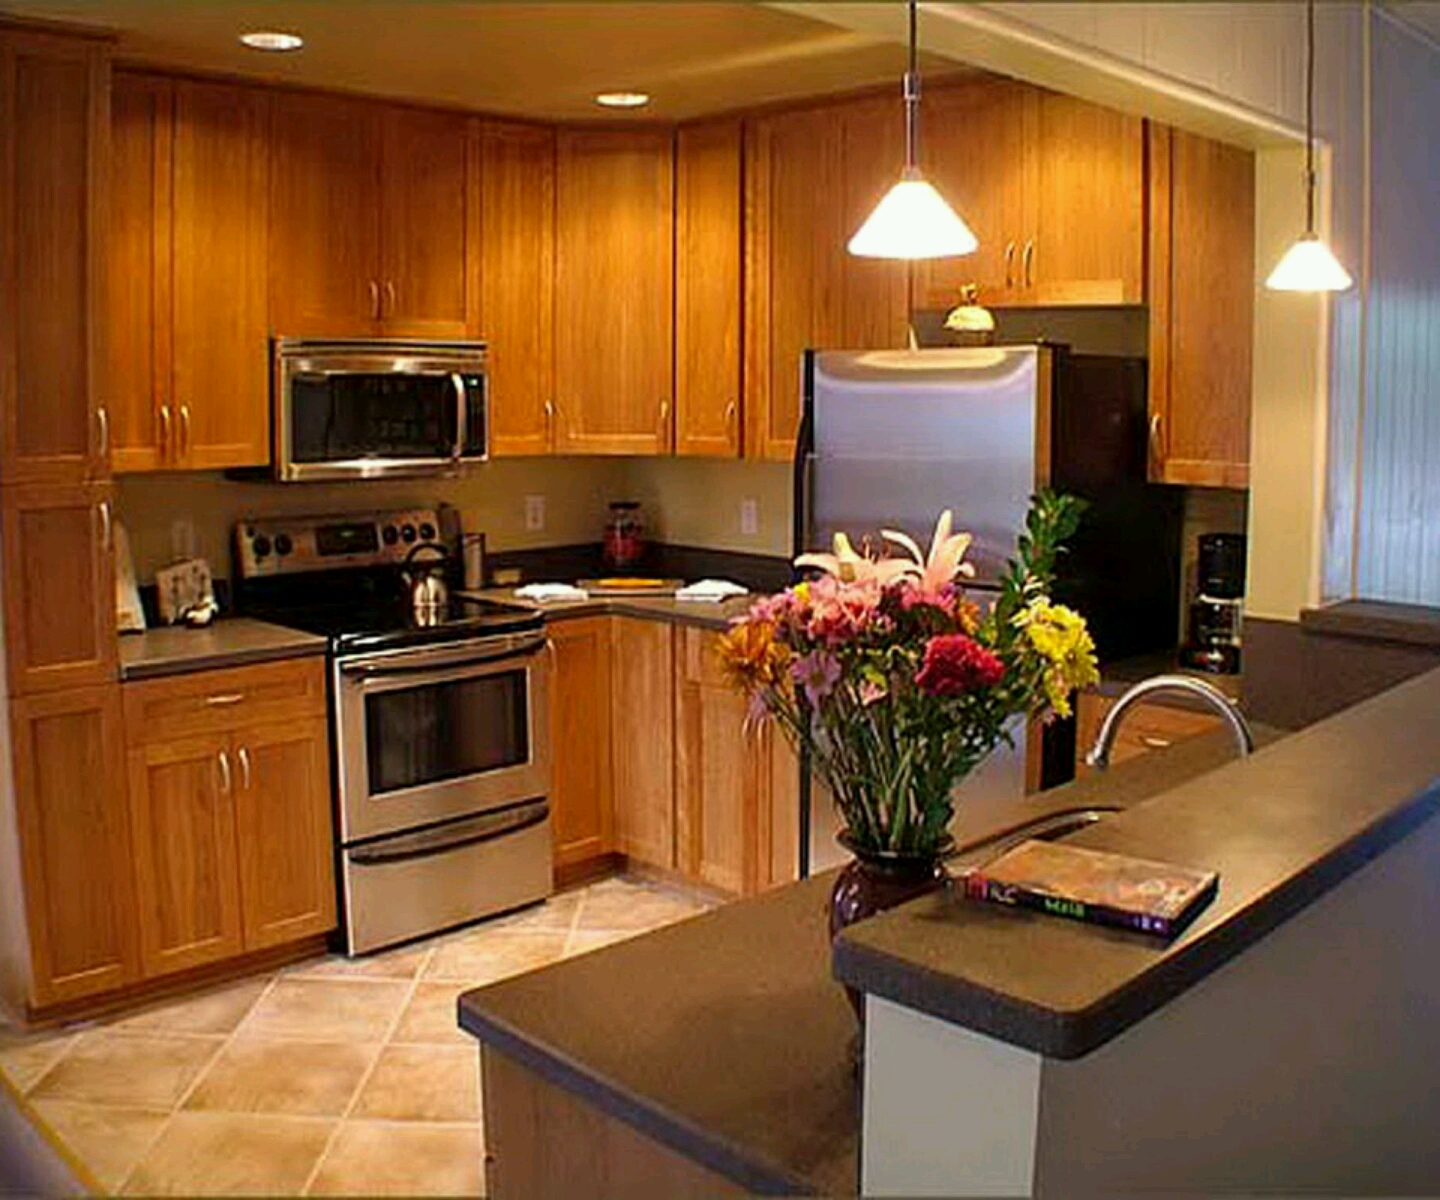 Contemporary Kitchen Cabinet Design: Modern Wooden Kitchen Cabinets Designs.